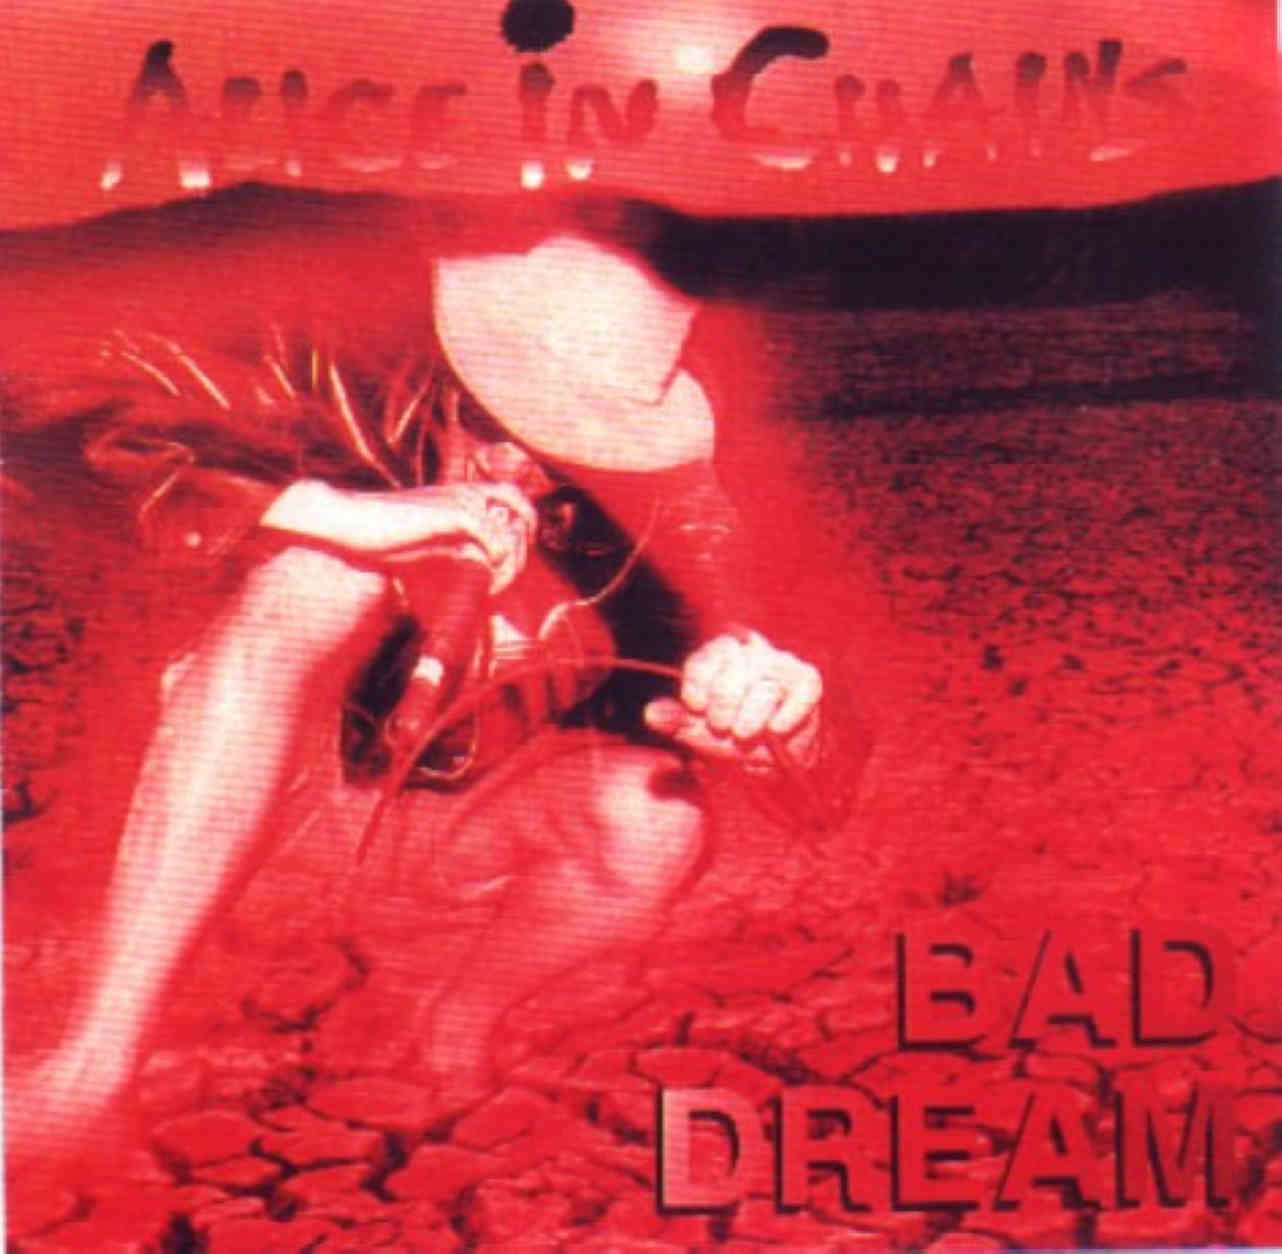 alice in chains them bones free mp3 download